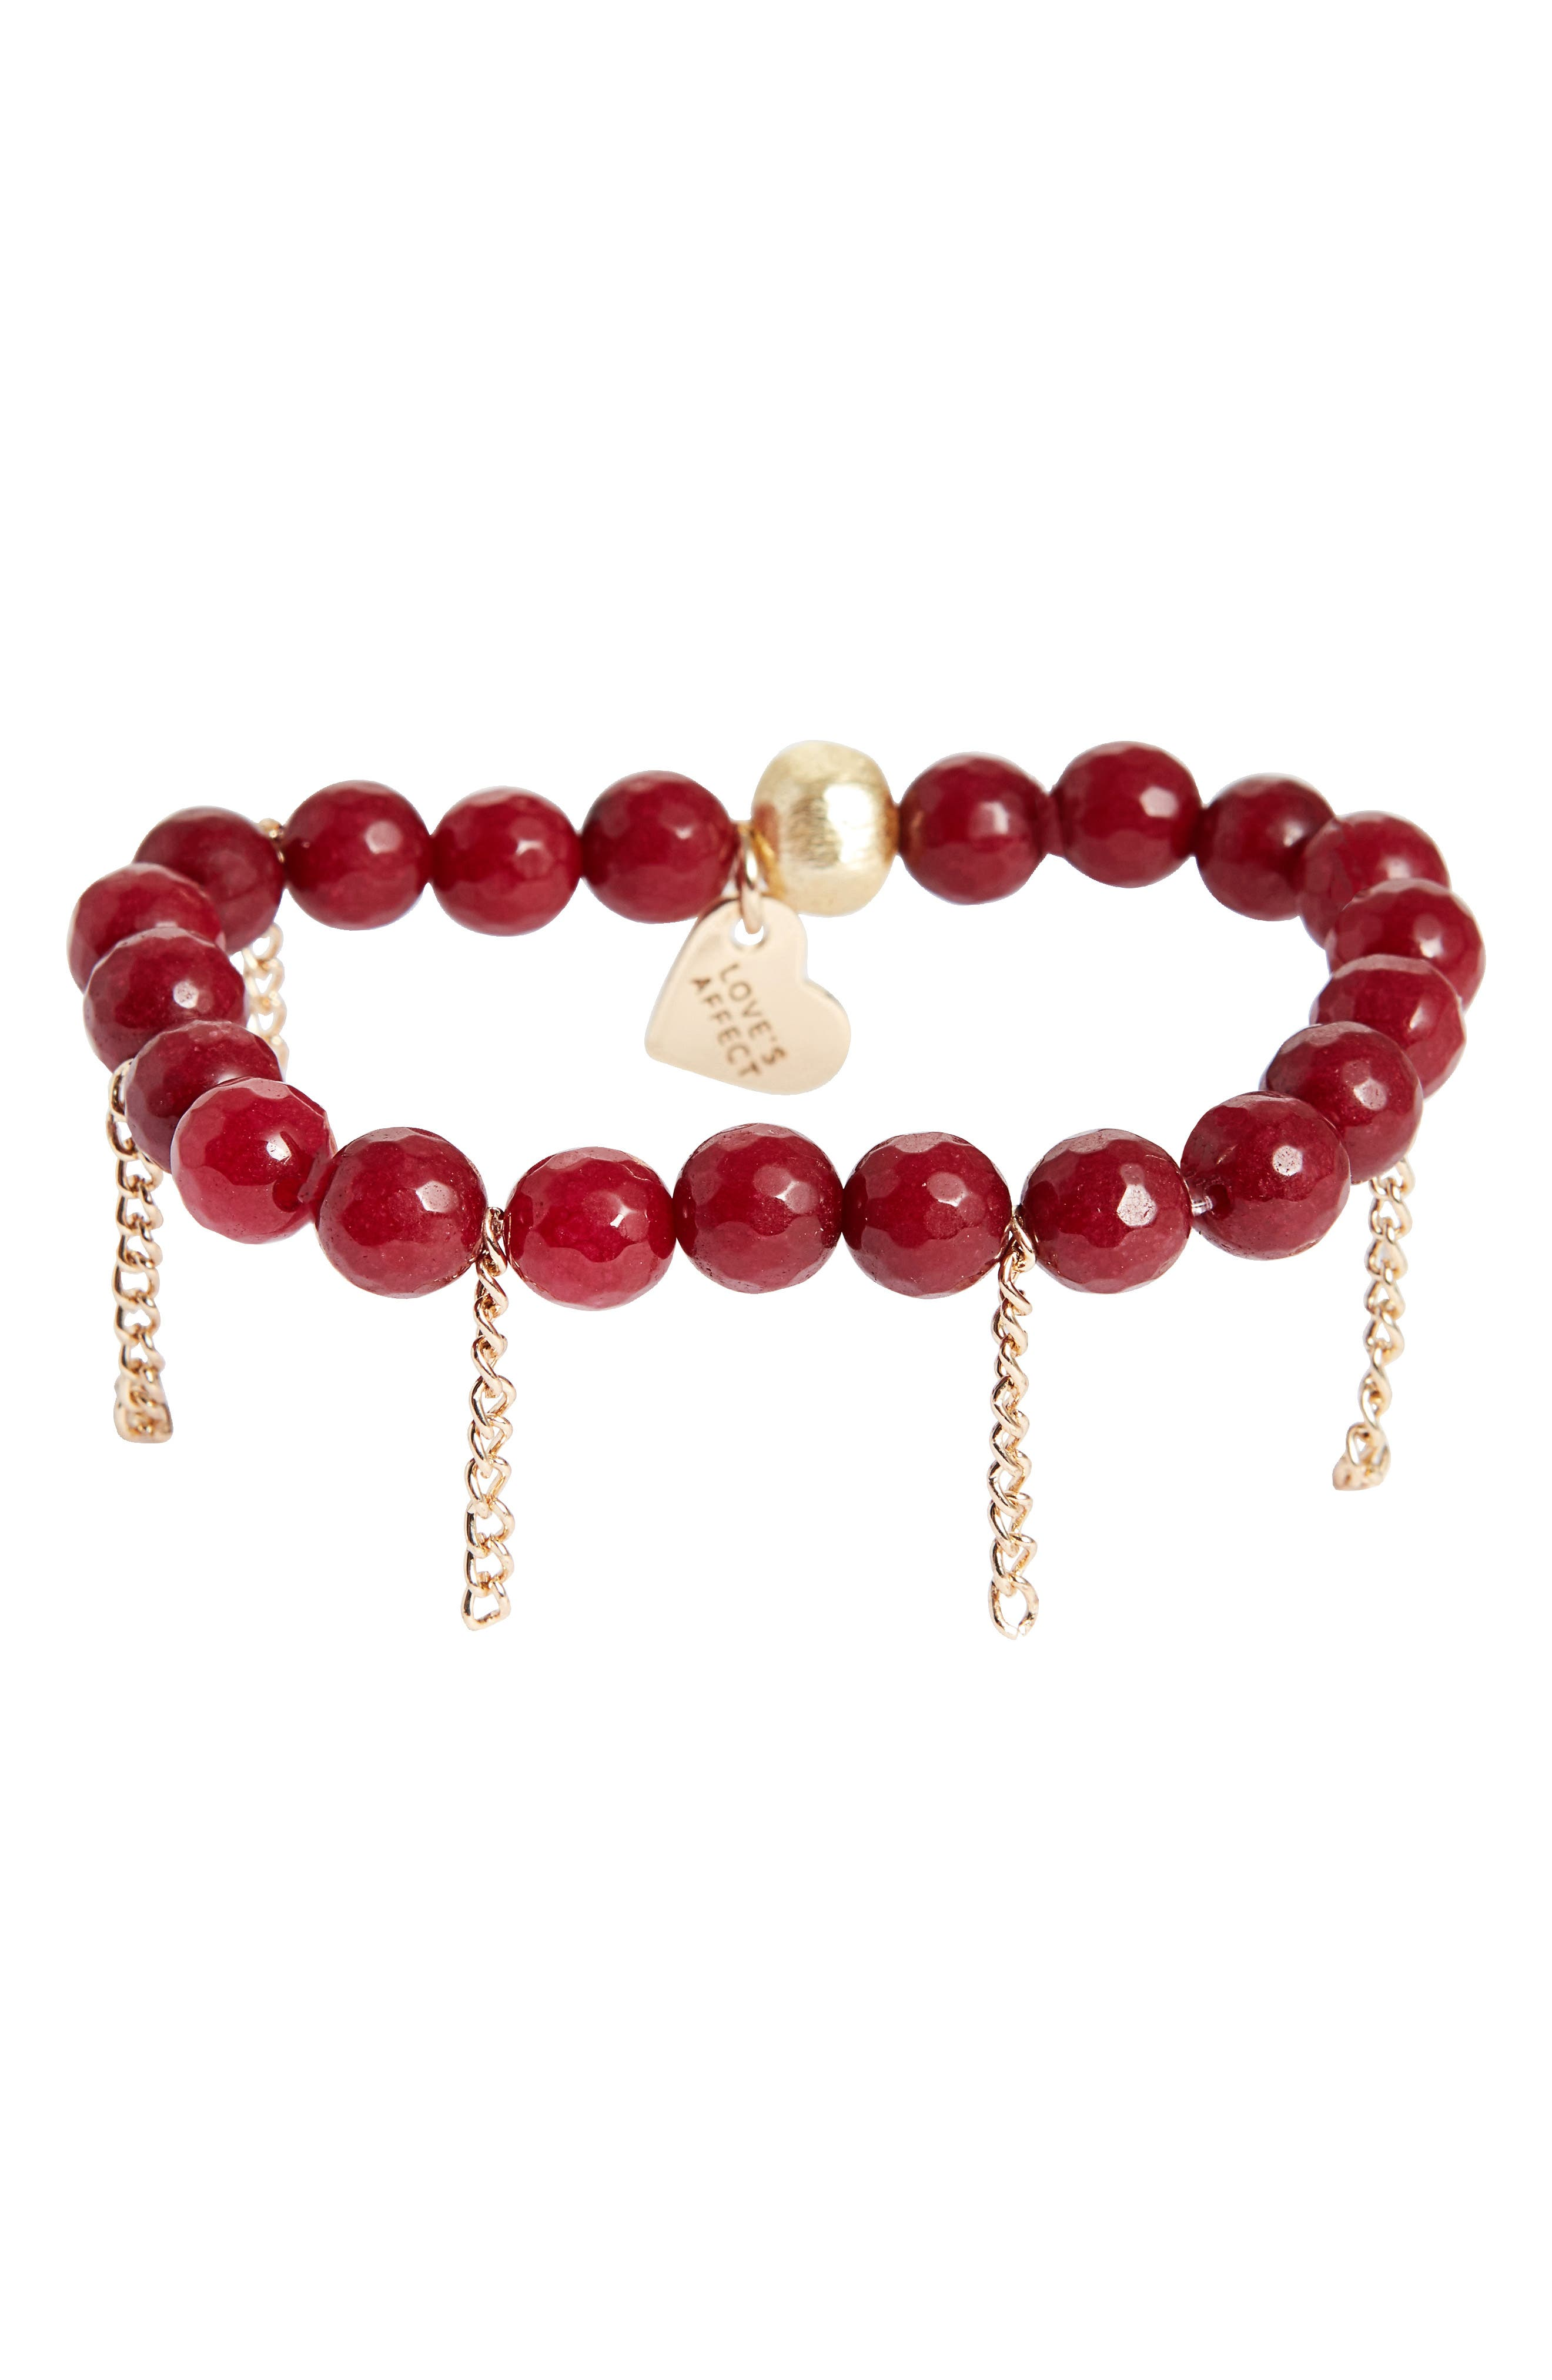 Alternate Image 1 Selected - Love's Affect Devyn Semiprecious Stretch Bracelet